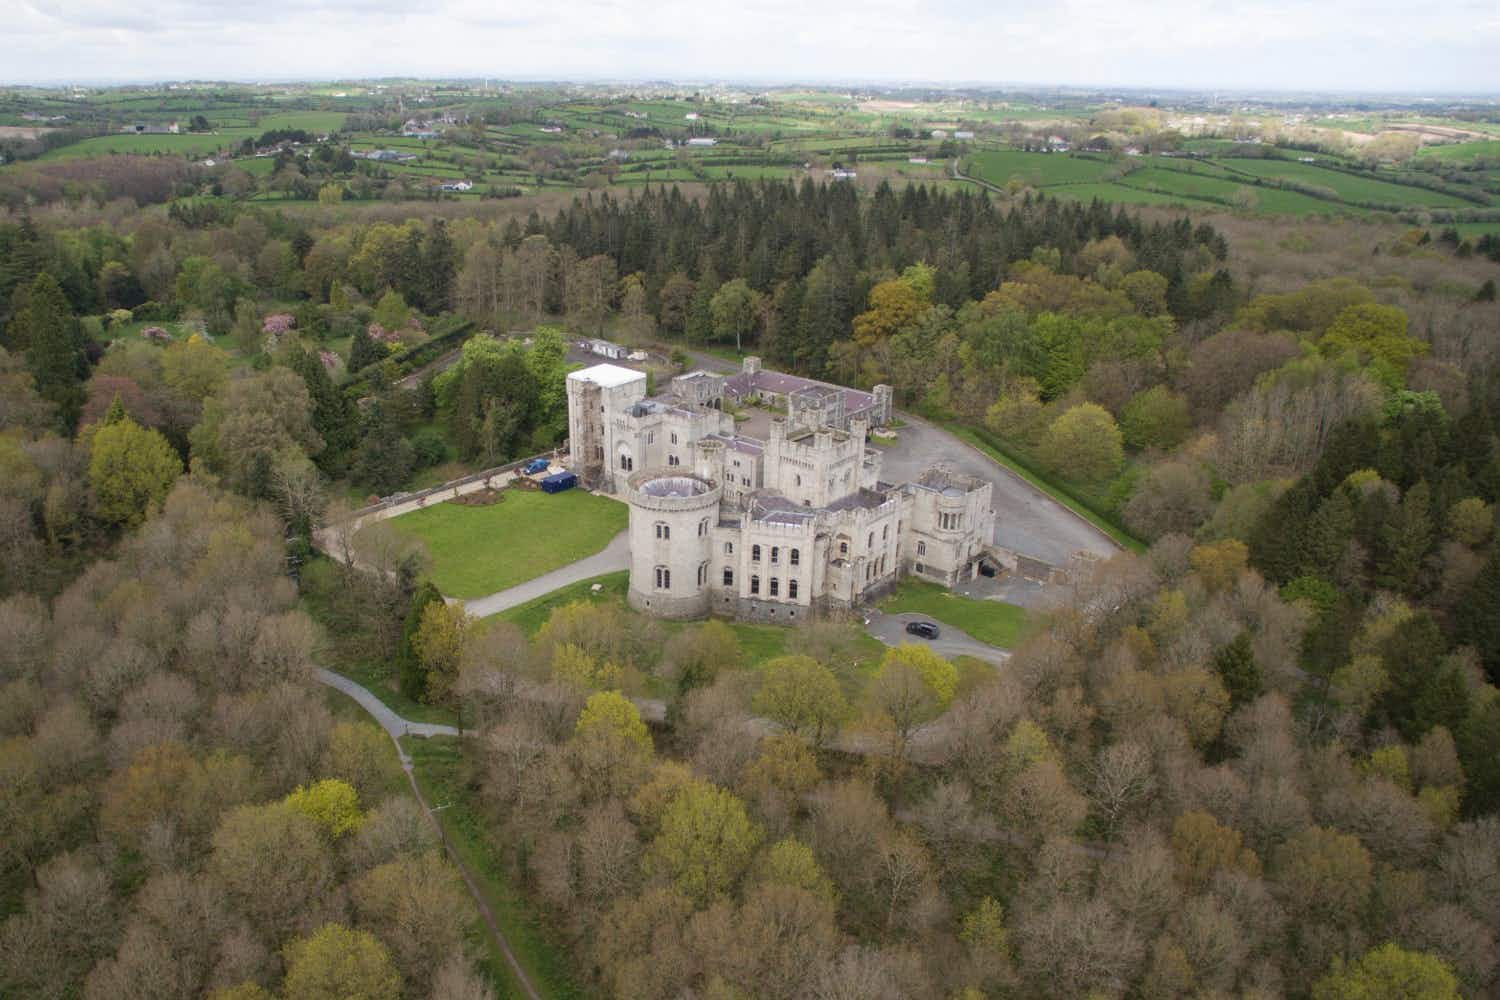 Buy part of the historic Irish castle featured in Game of Thrones